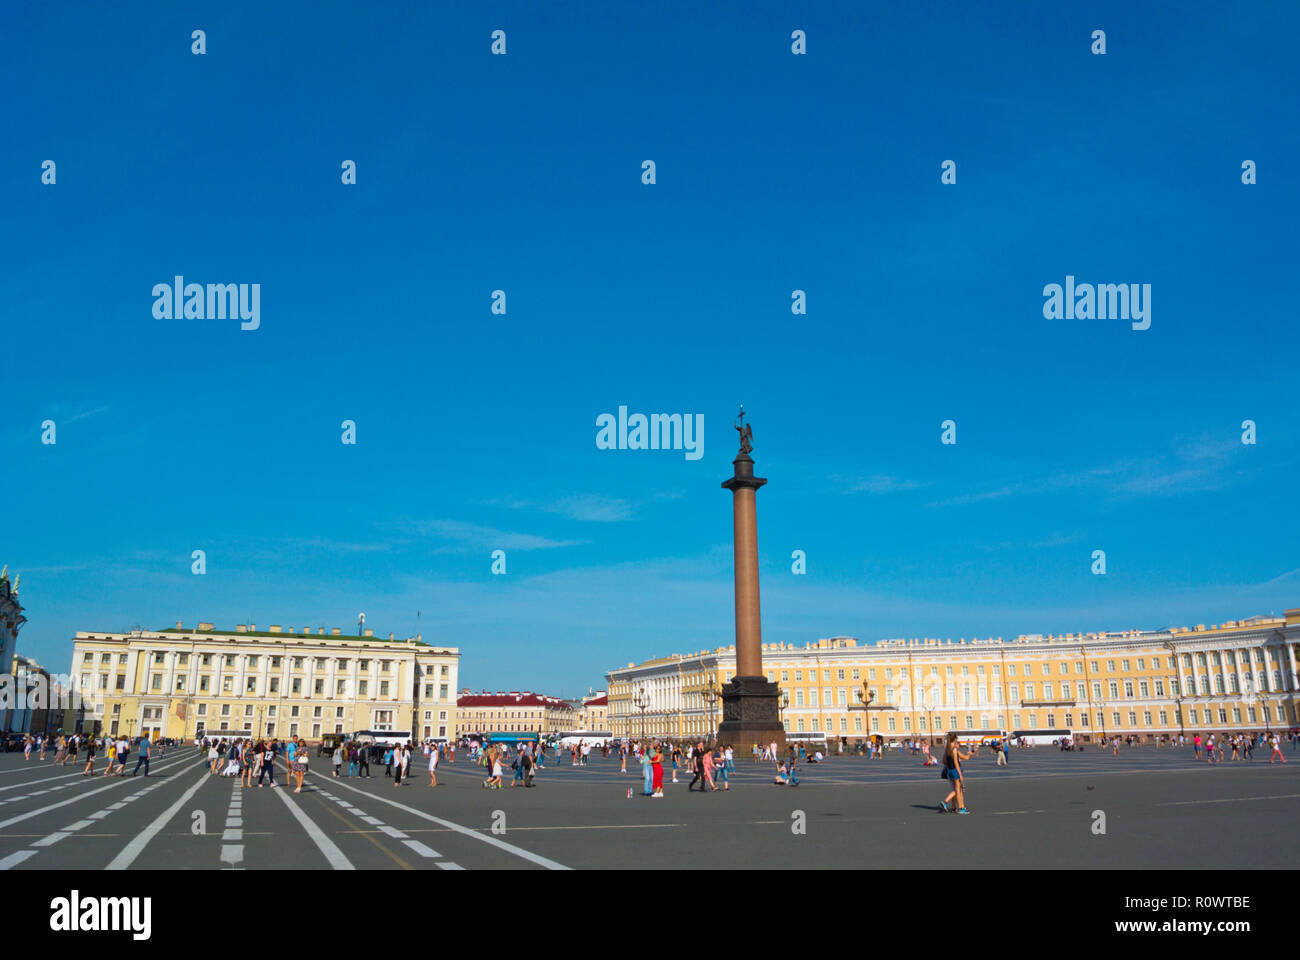 Palace Square, Saint Petersburg, Russia - Stock Image